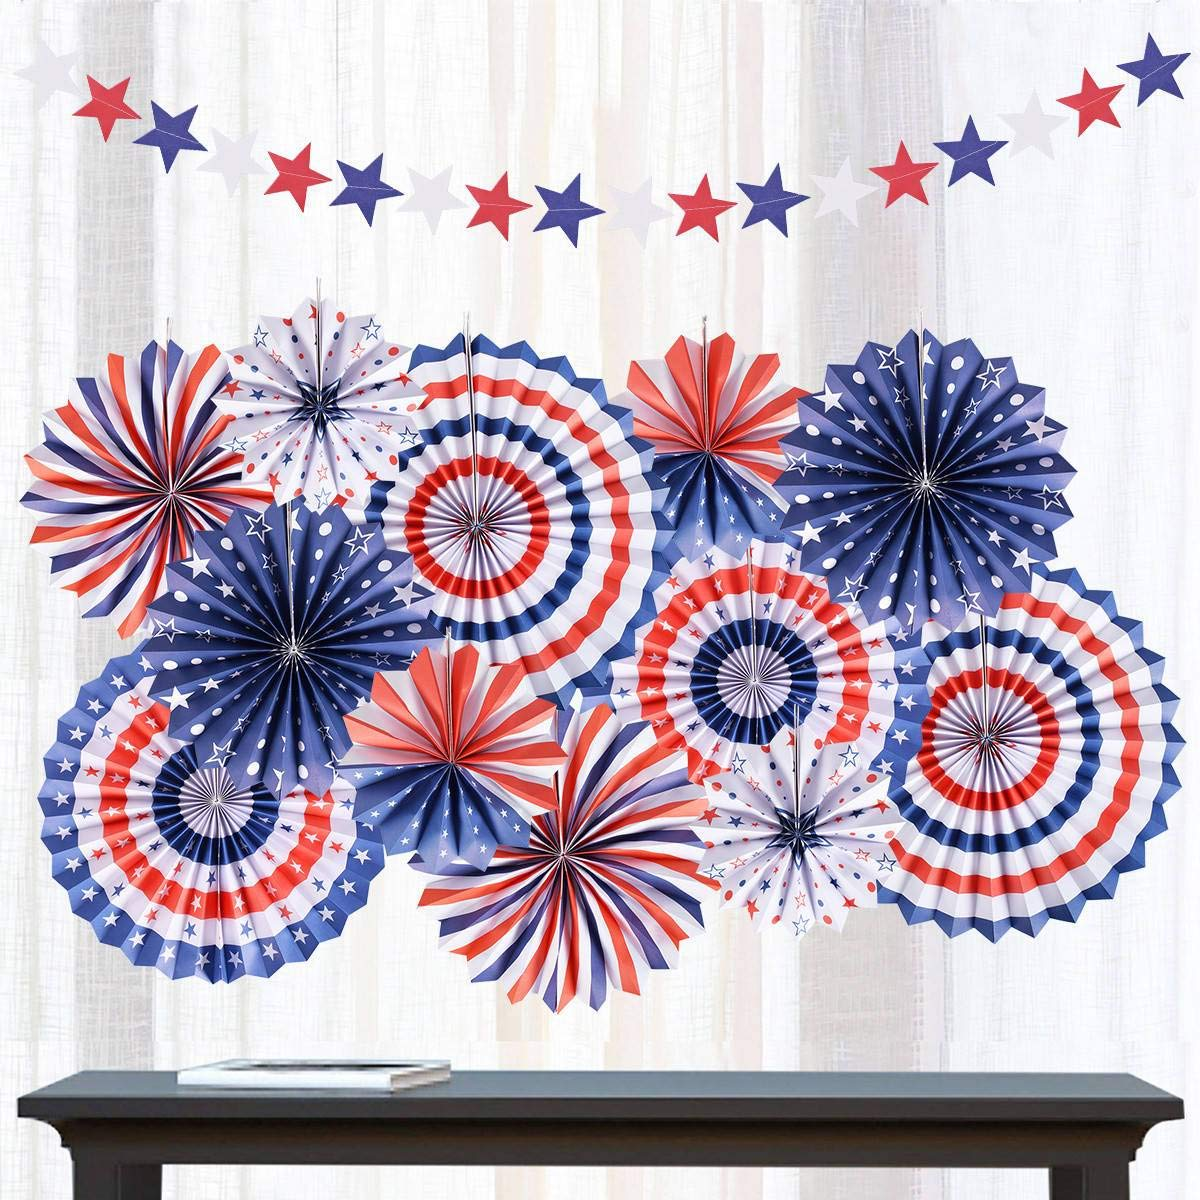 Set of 12 Patriotic 4th of July Hanging Paper Fans Rosettes Party Decor Decorations Supplies Photo Props for Independence Day, White Blue and Red